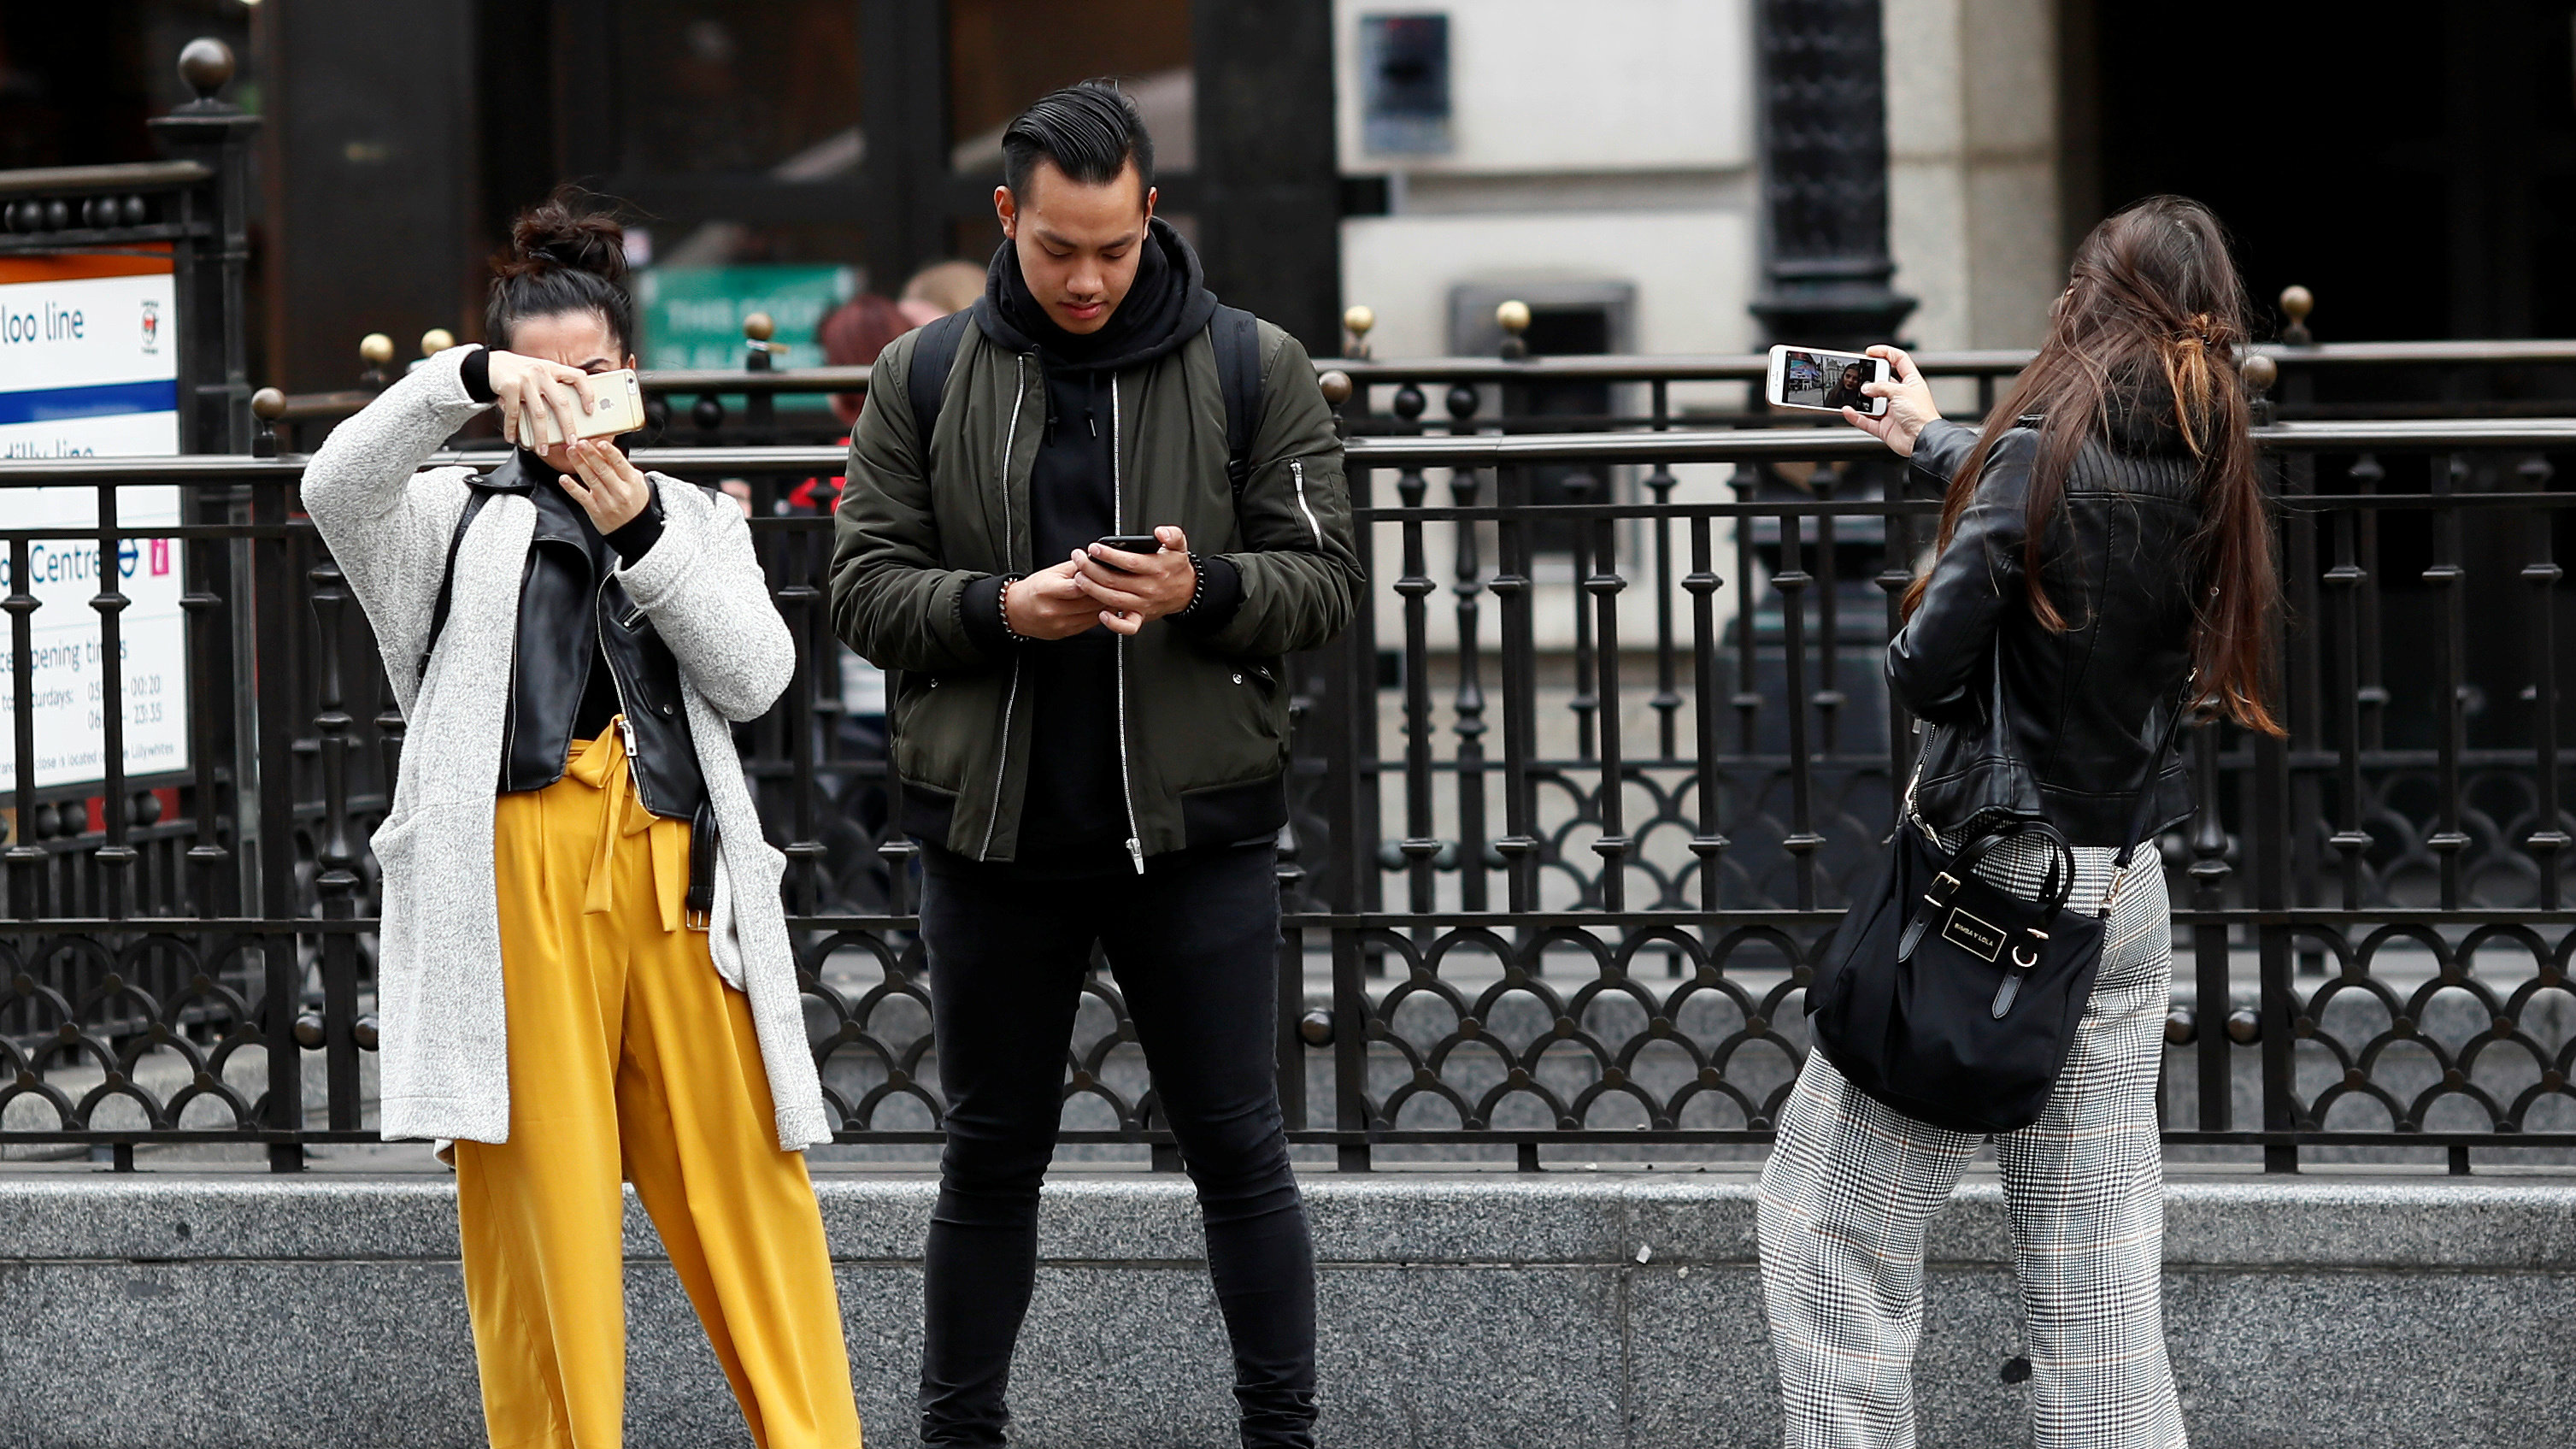 People look at their mobile phones at Piccadilly Circus in London